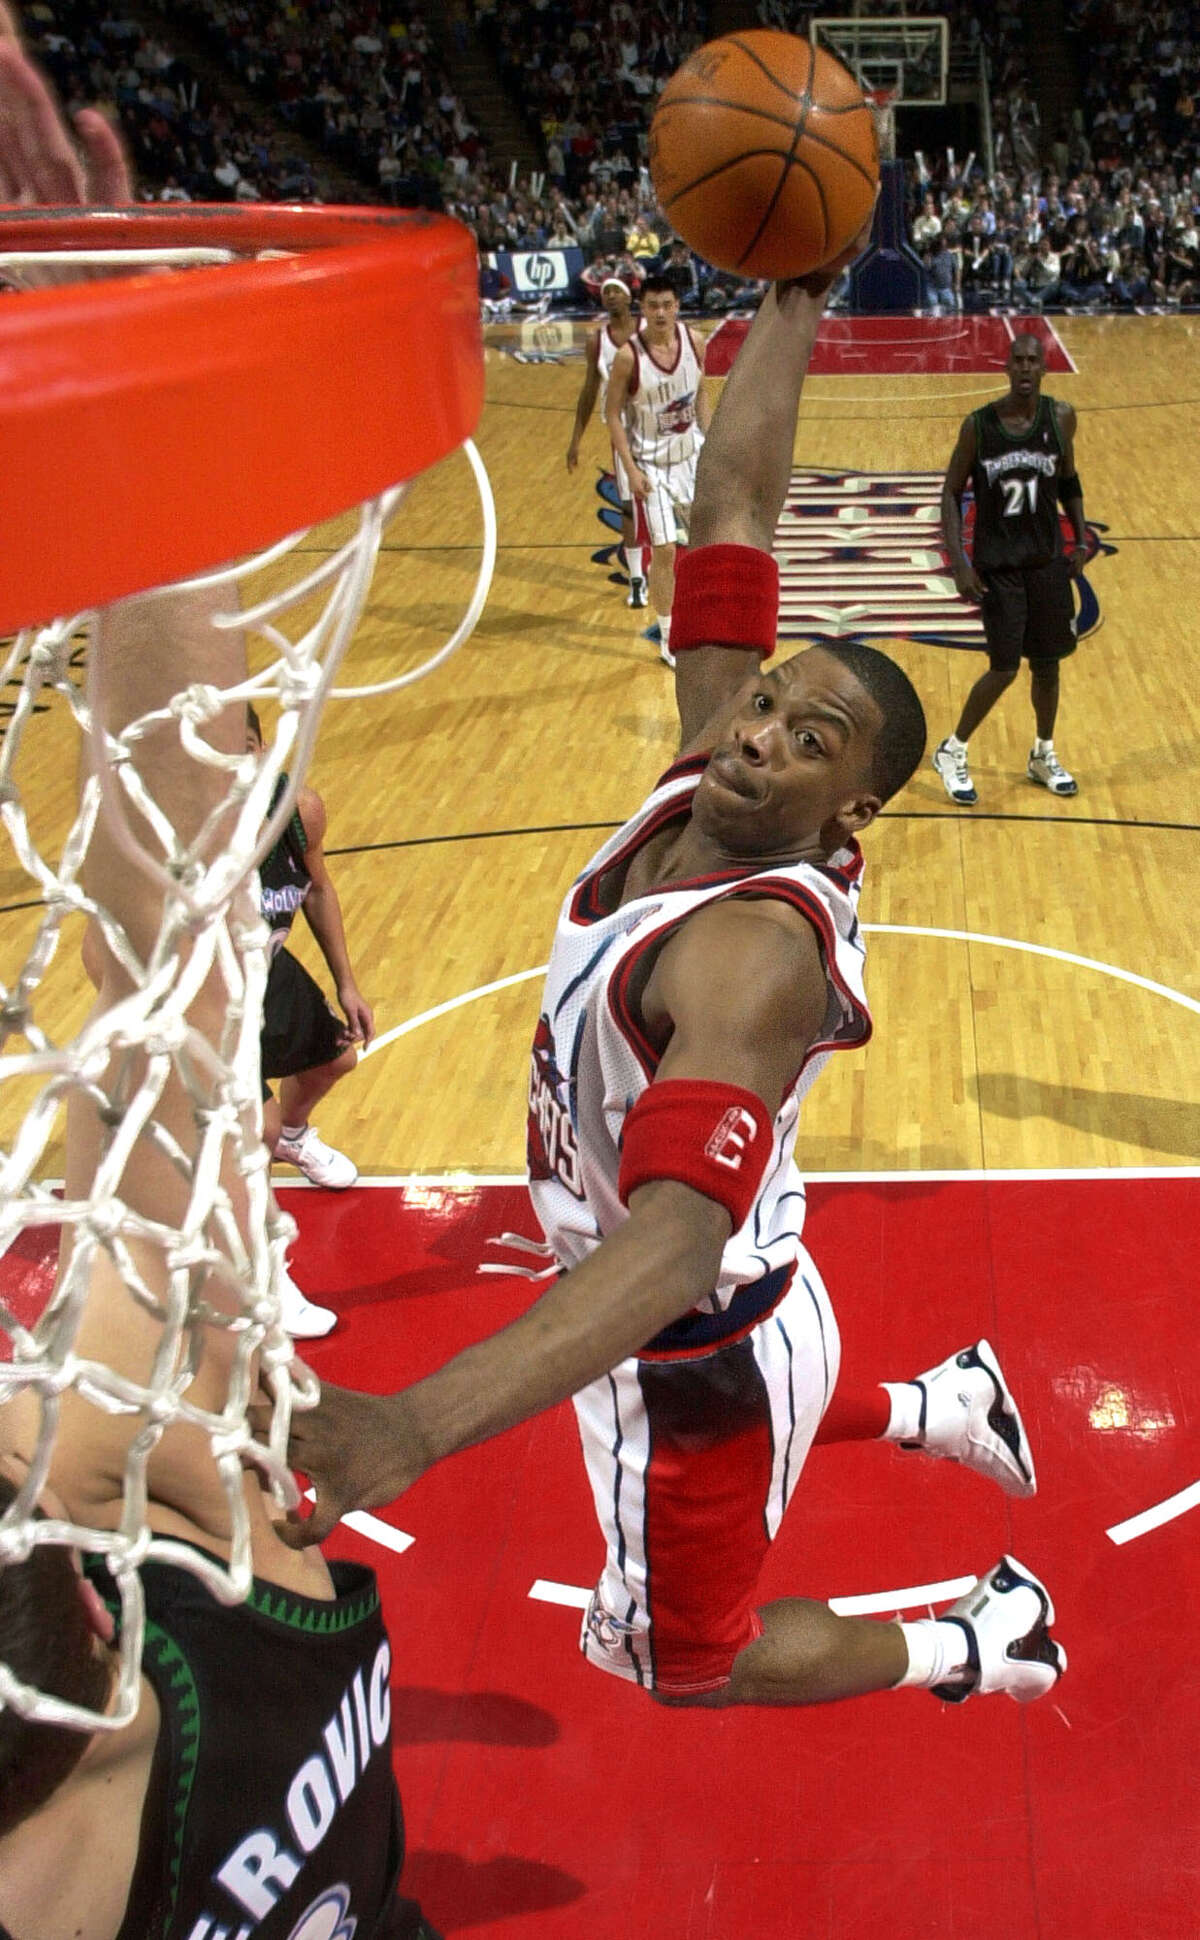 Houston Rockets' Steve Francis is among athletes who participated in sports programs at San Jacinto College. College trustees will vote next week on whether to discontinue some sports, including basketball, in 2018.